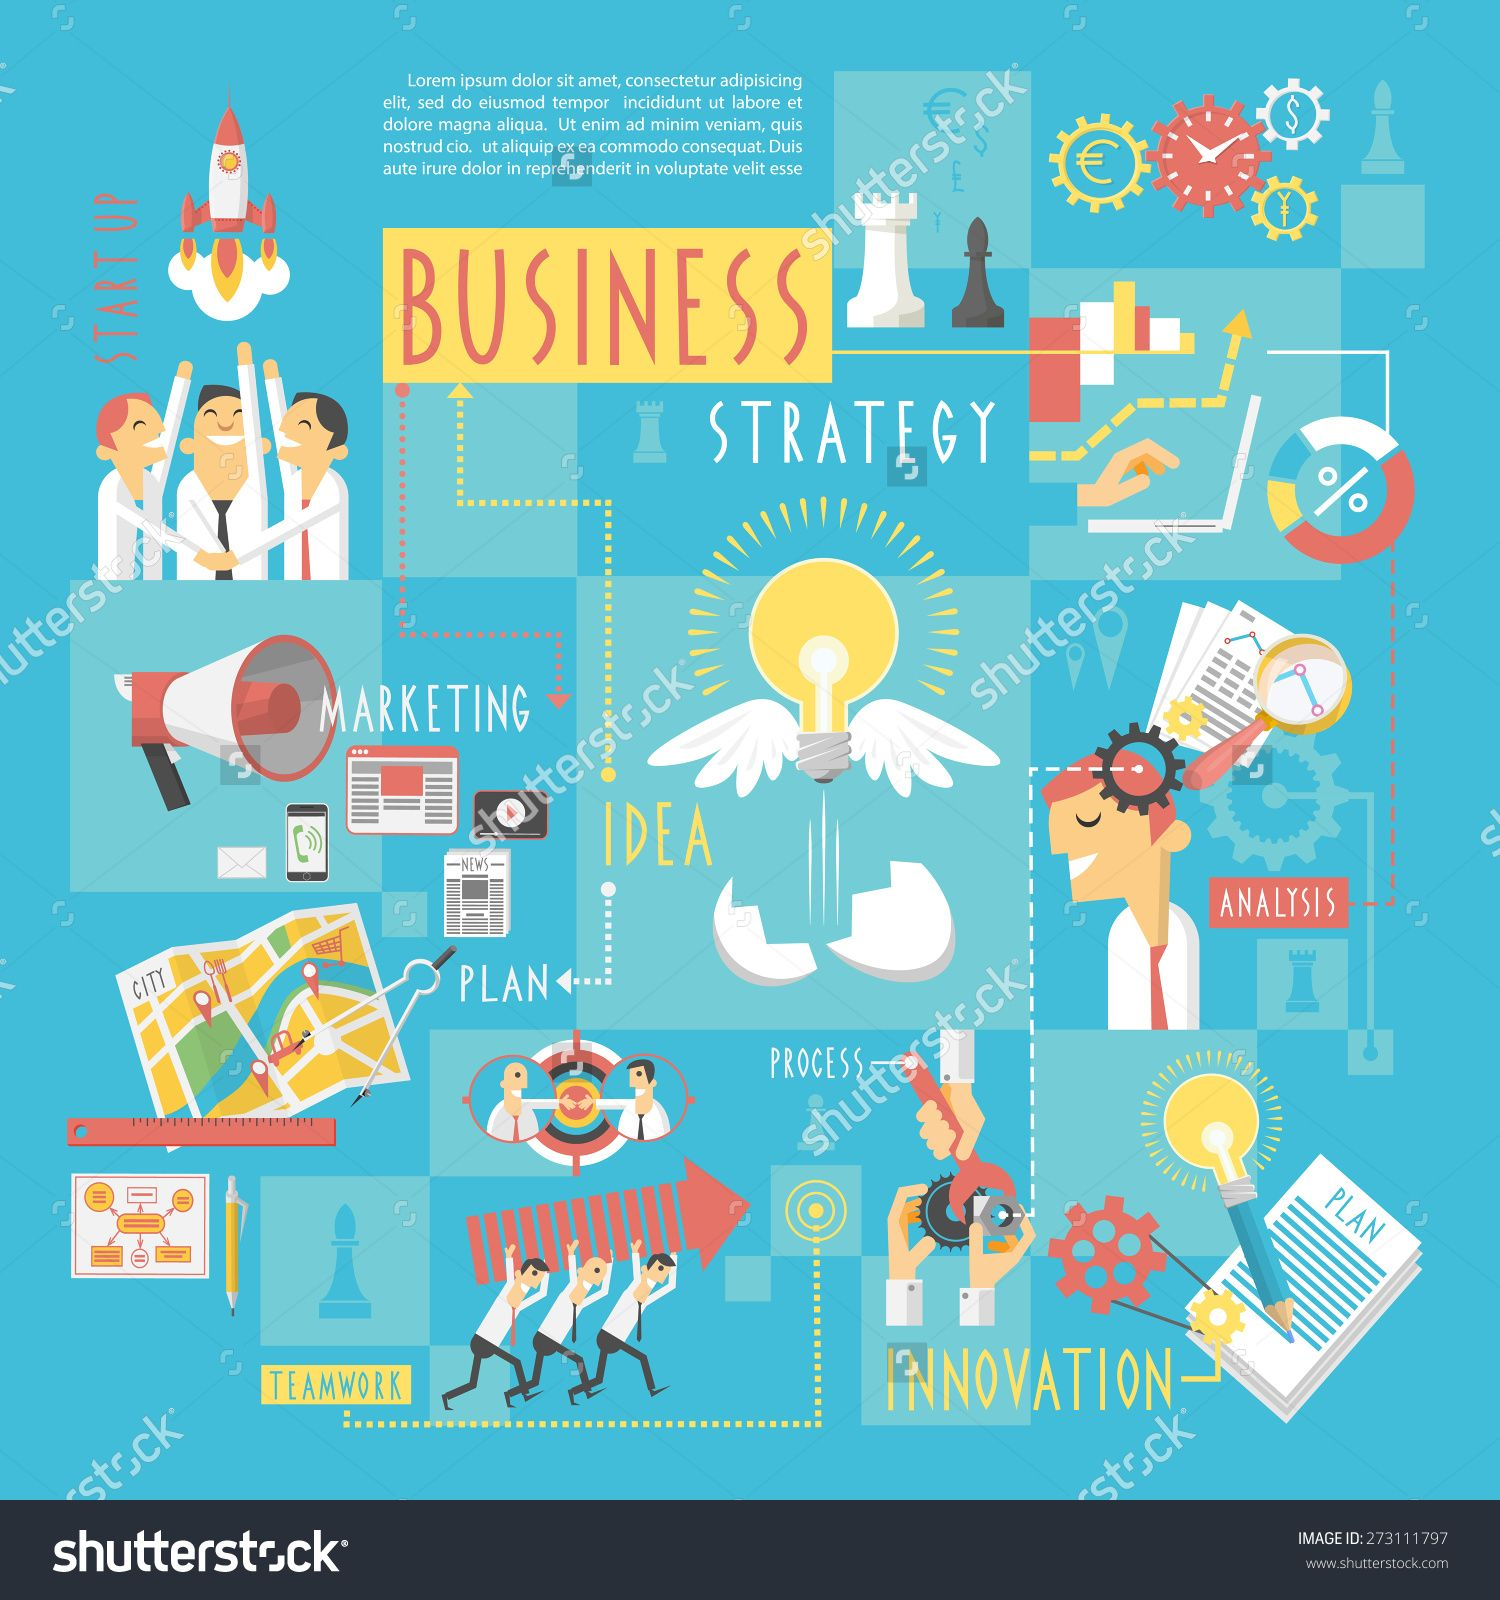 Business Model Poster  Google Keress  Temo